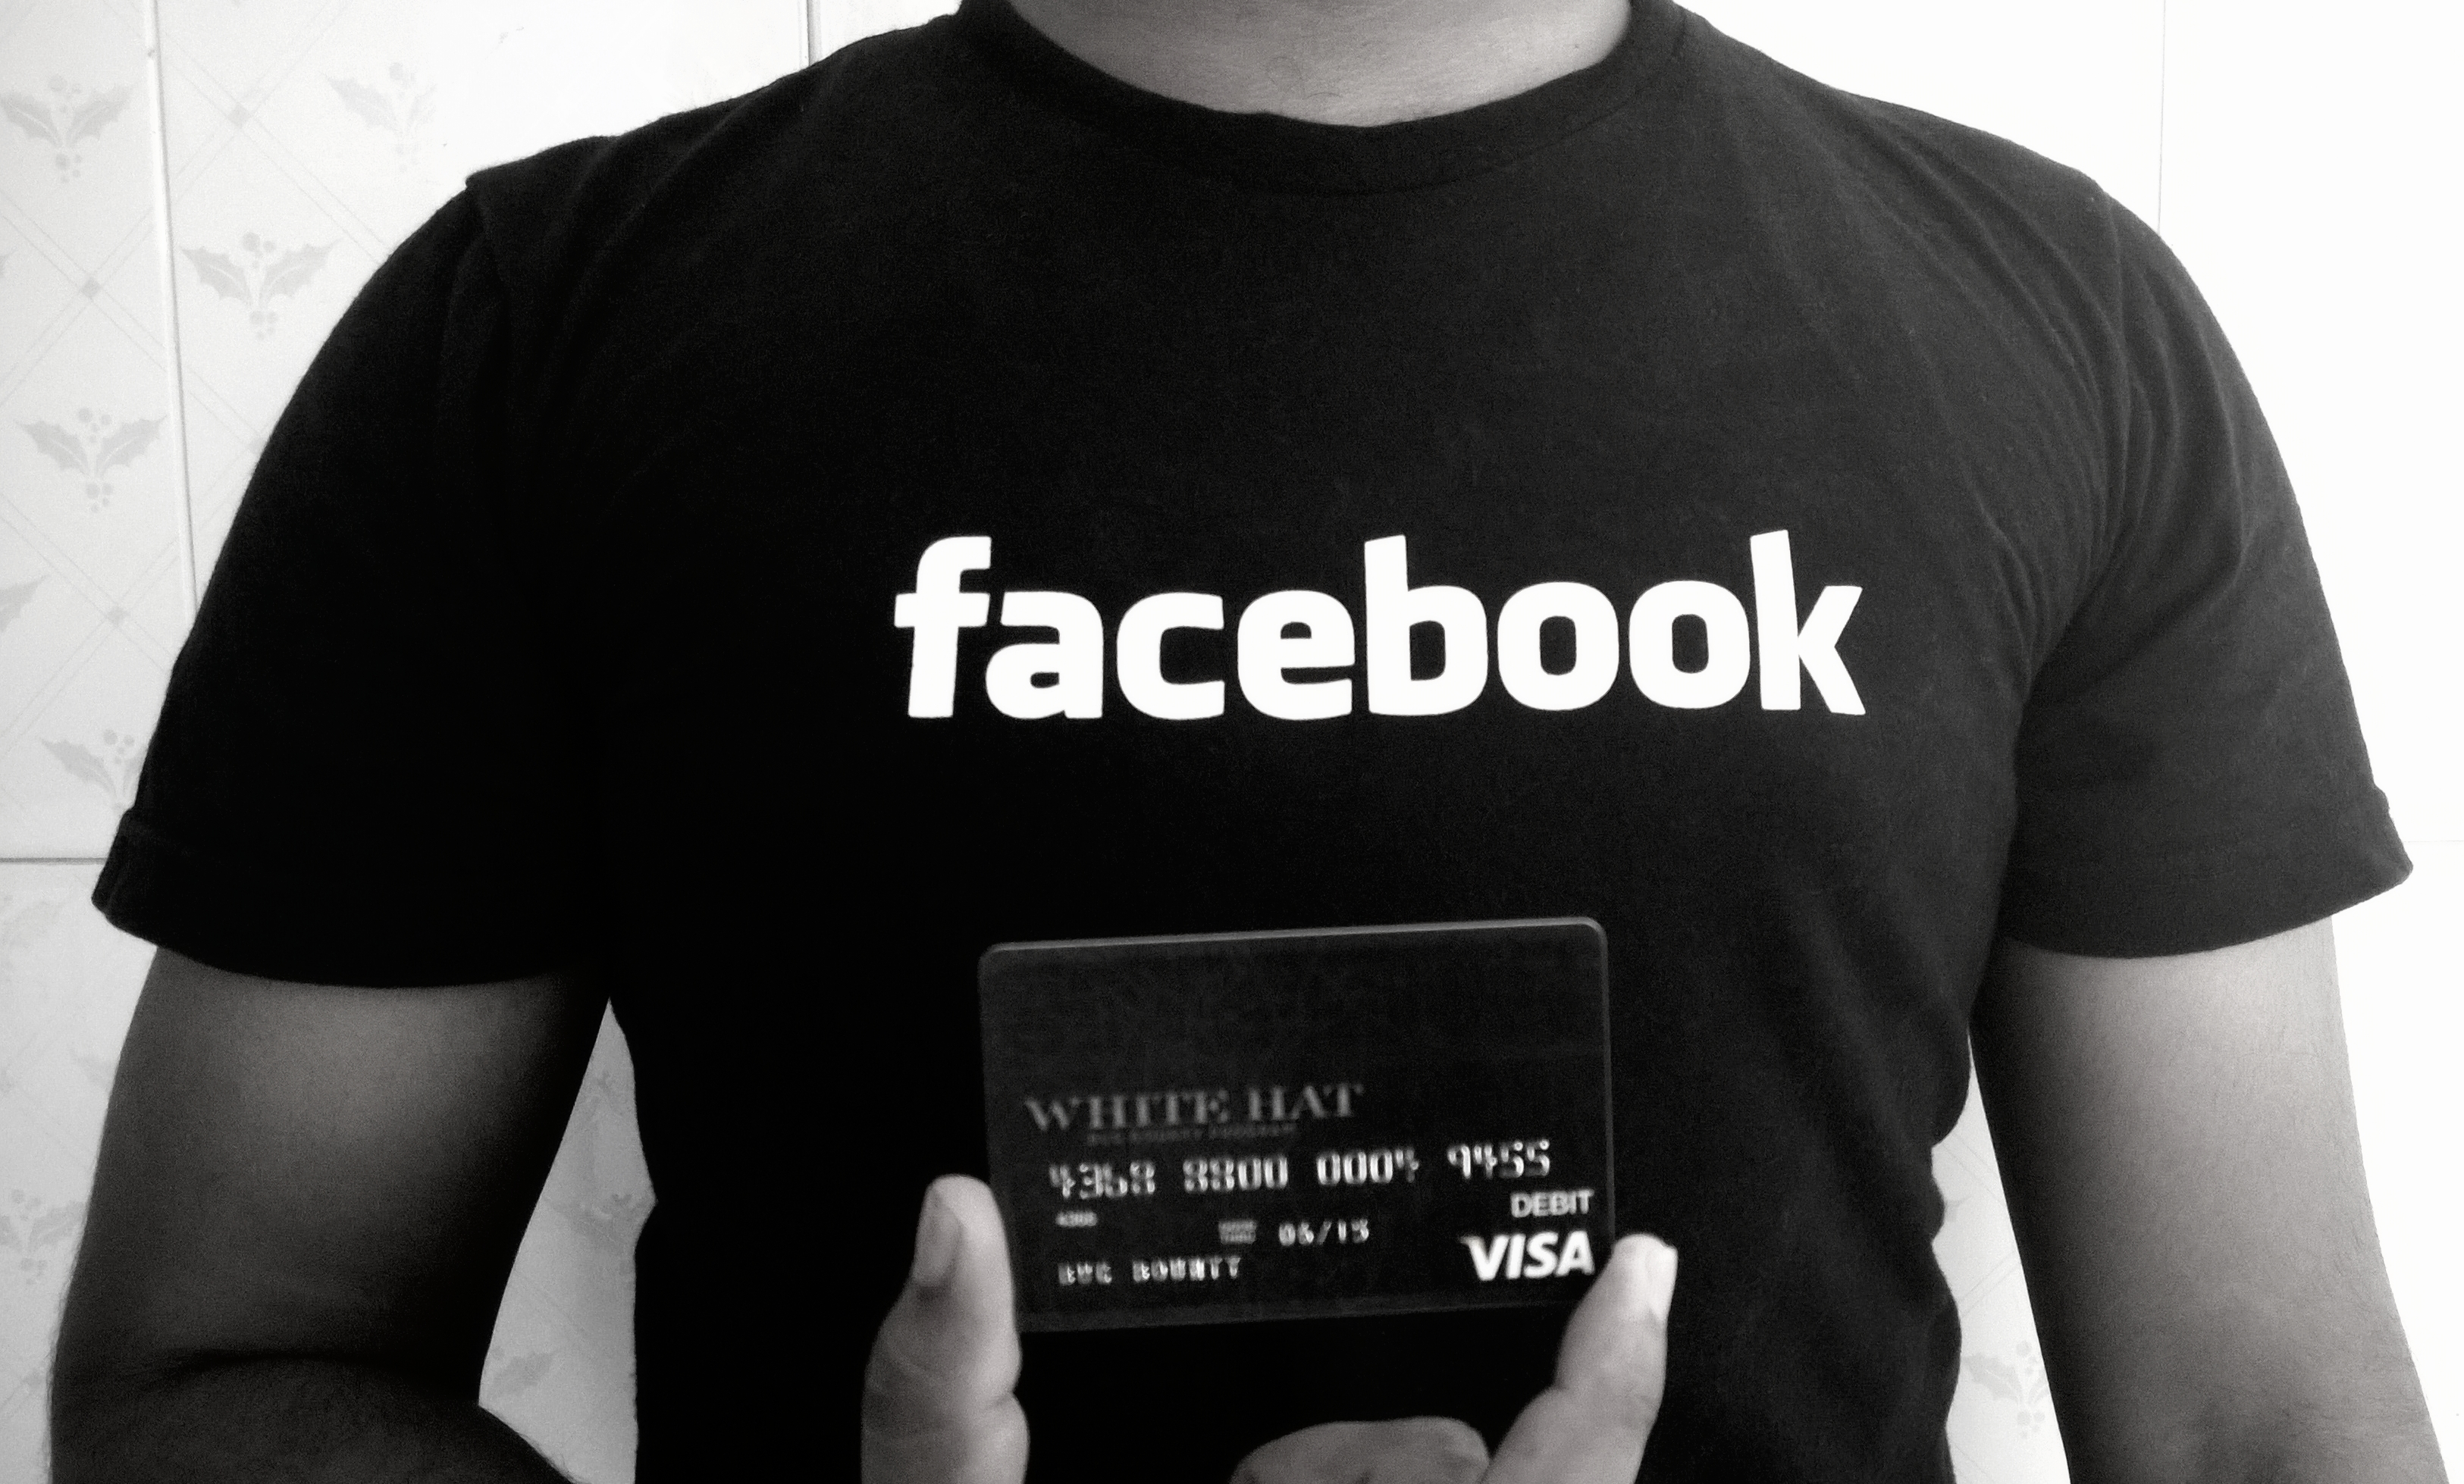 Facebook_t-shirt_with_whitehat_debit_card_for_Hackers